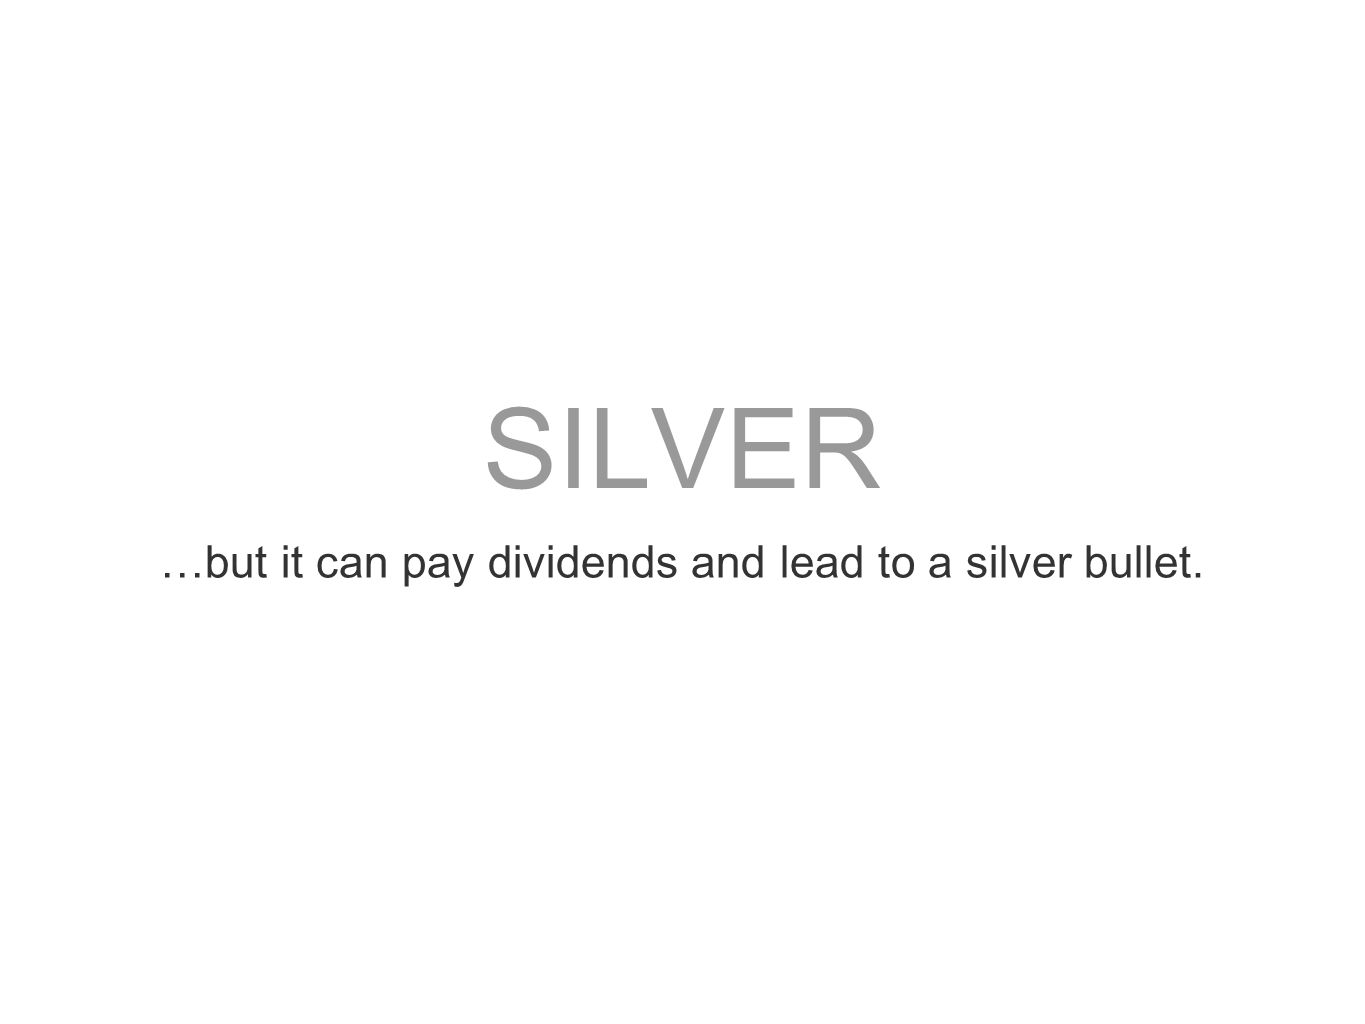 SILVER …but it can pay dividends and lead to a silver bullet.